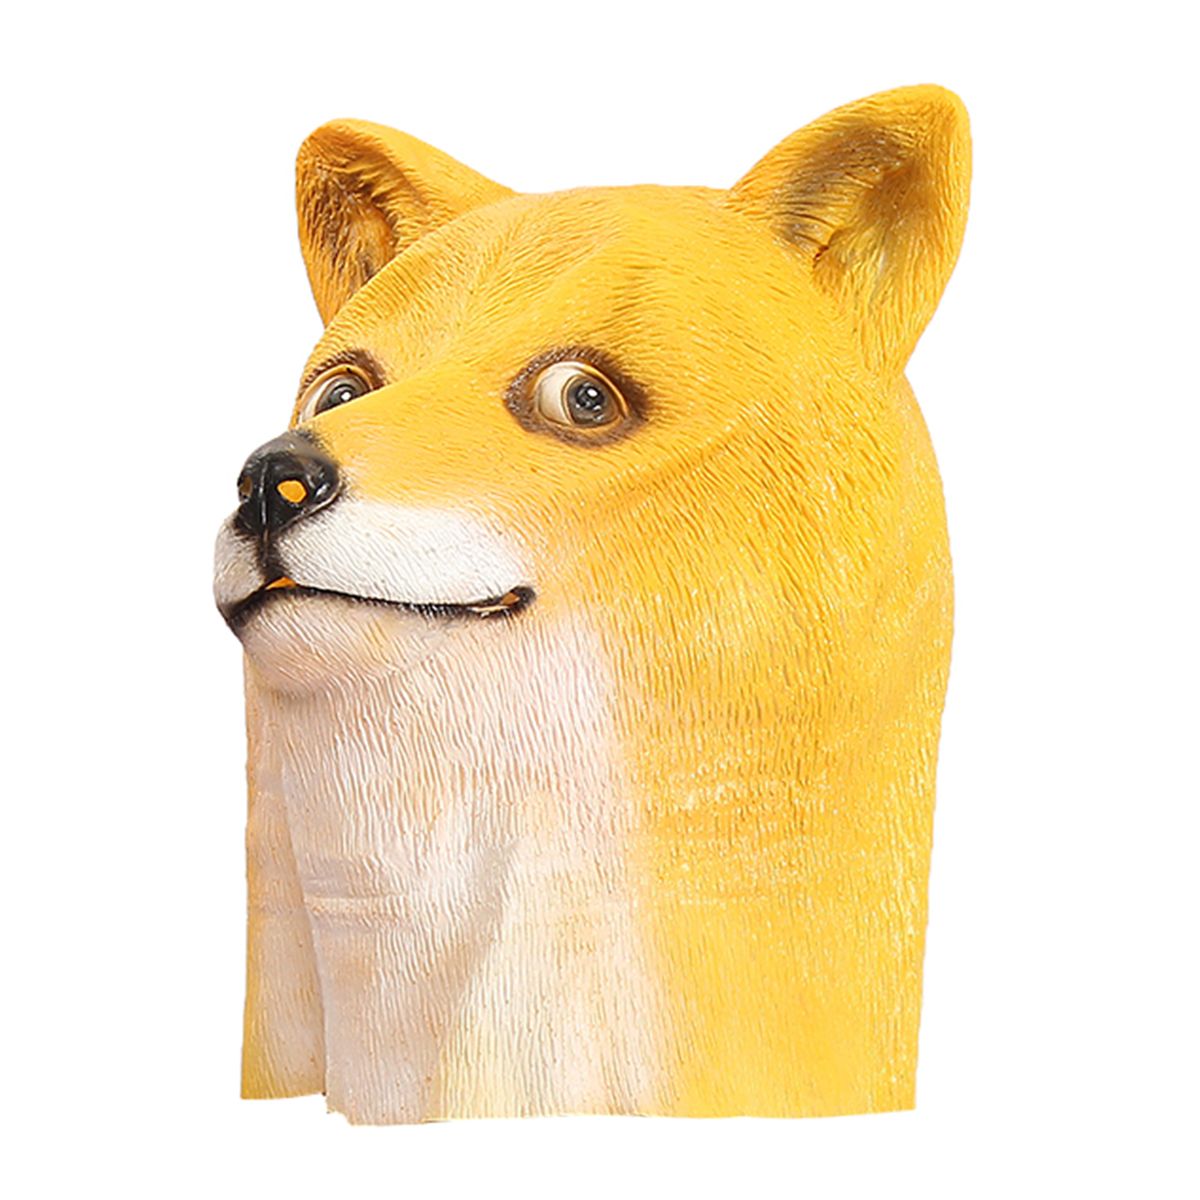 Doge Head Mask Creepy Animal Halloween Costume Theater Prop Latex Party Toy